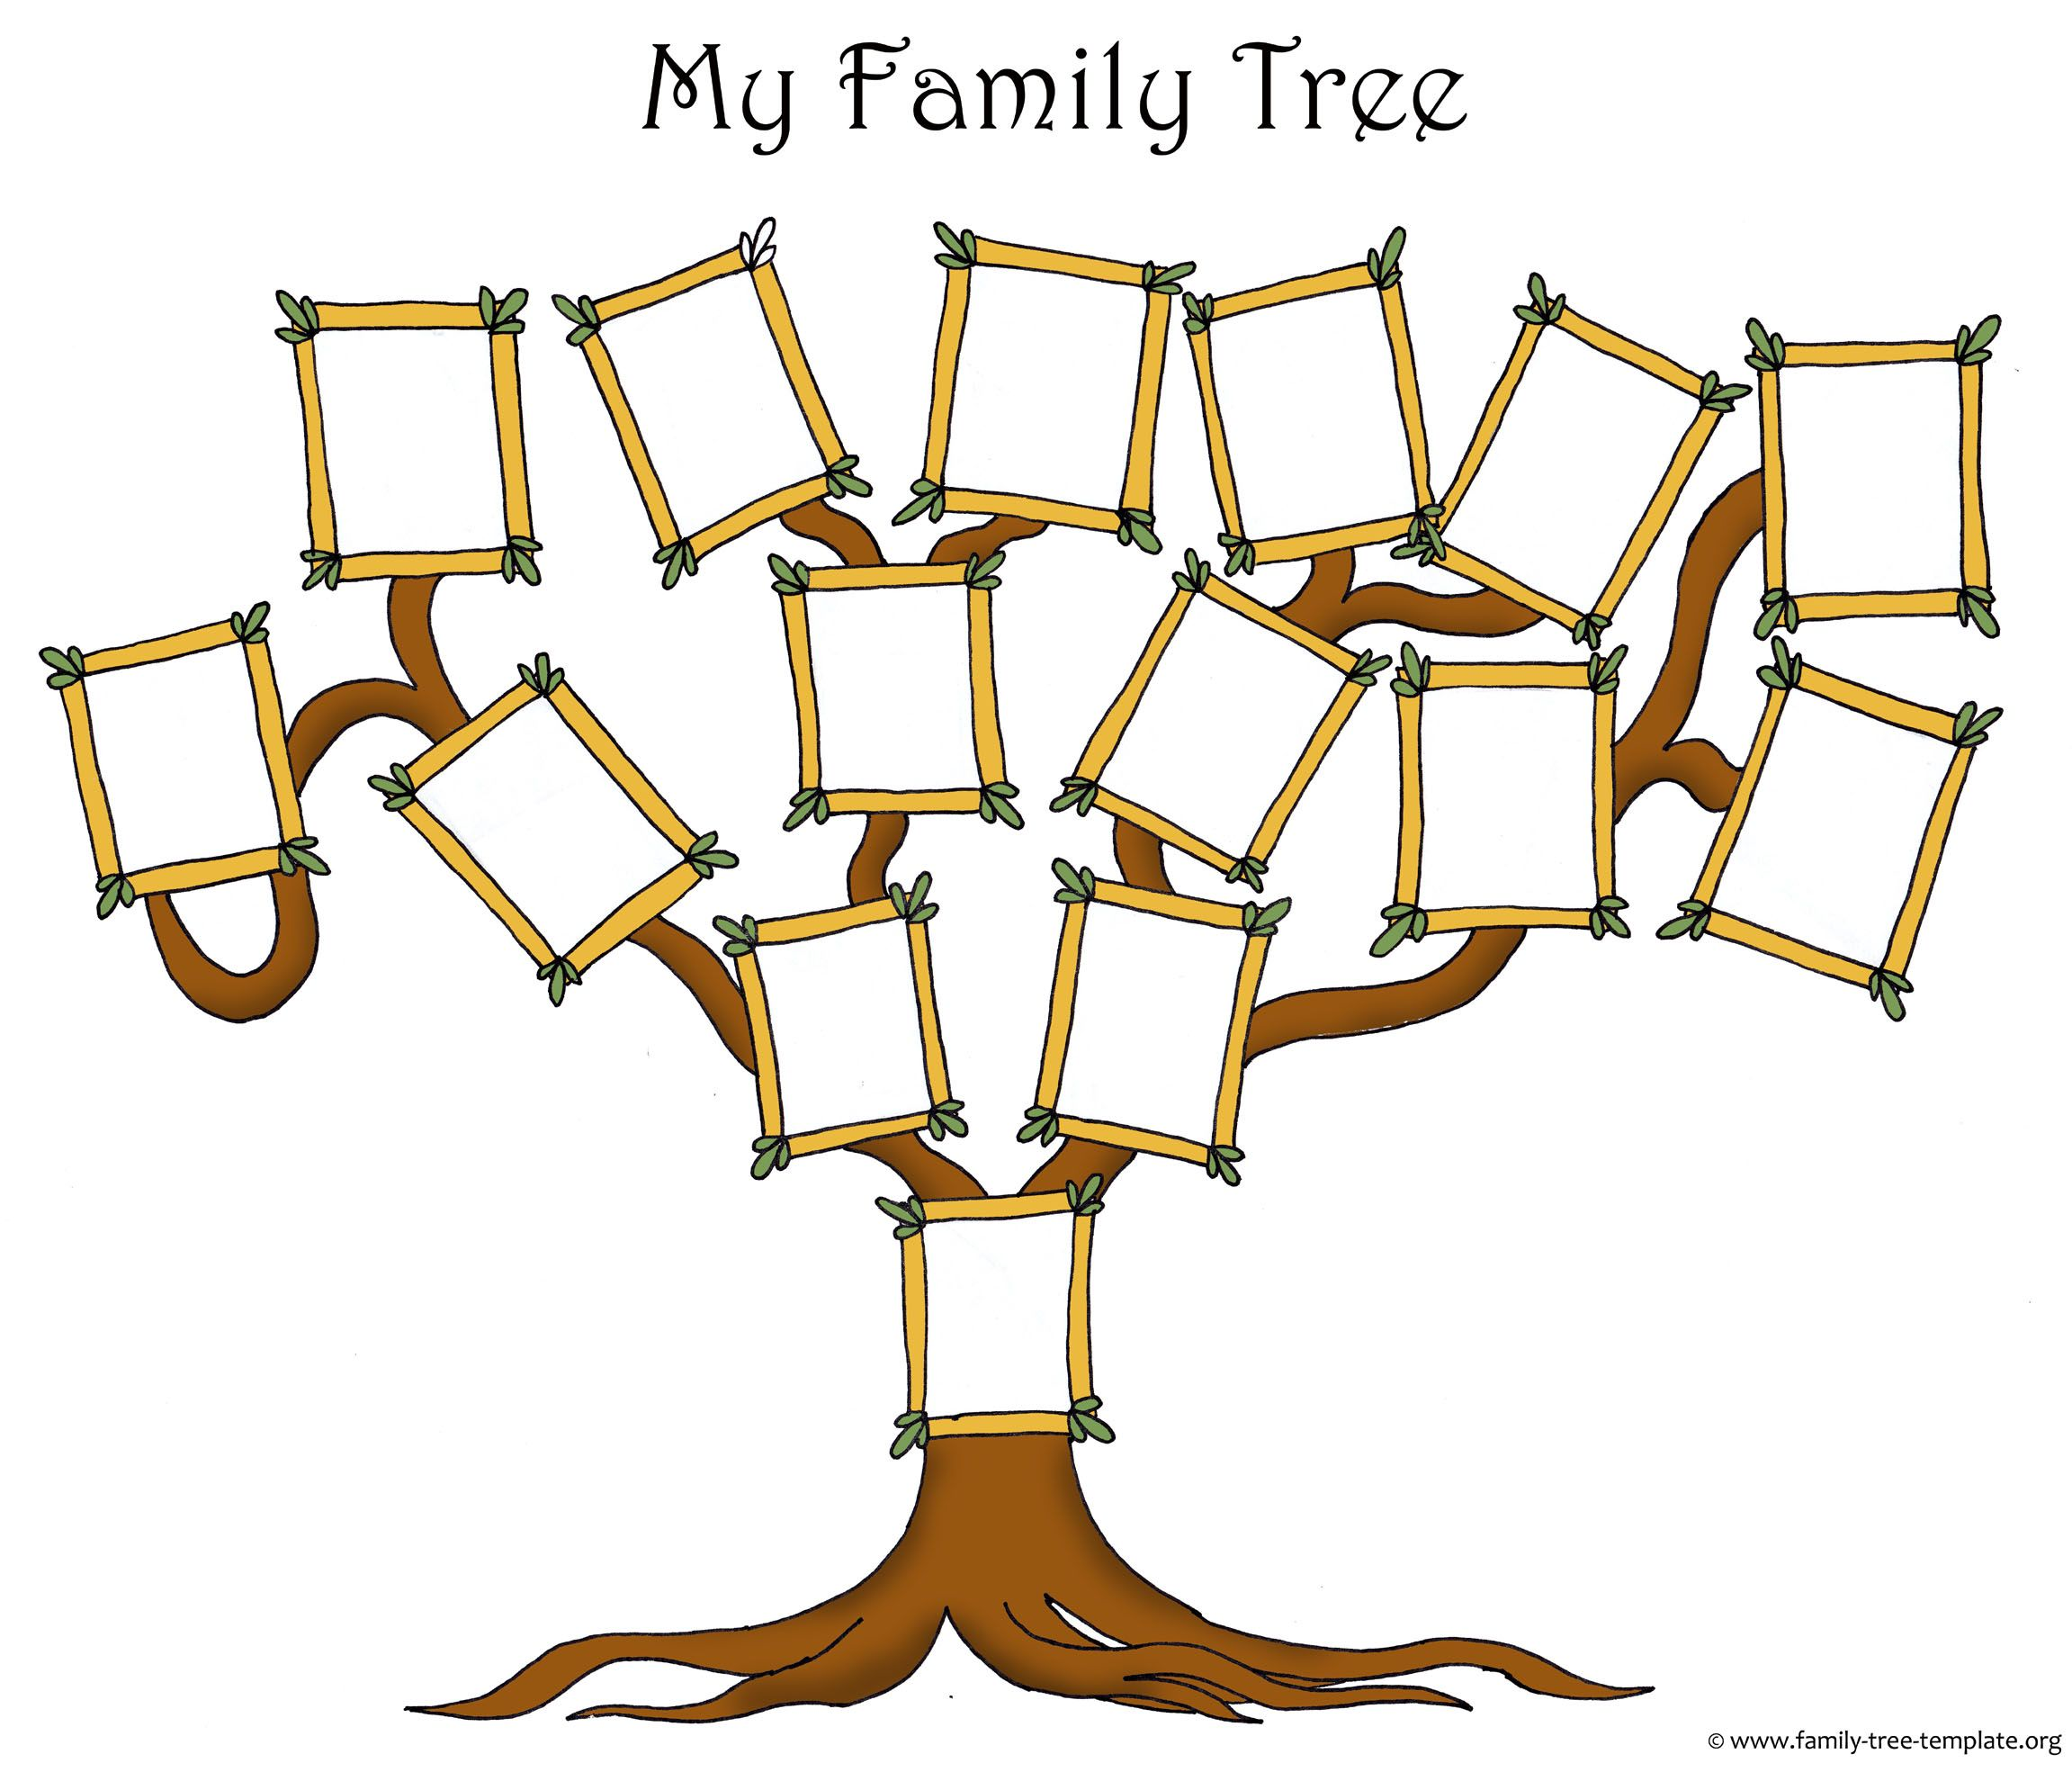 Original free family tree template with picure frames for family ...